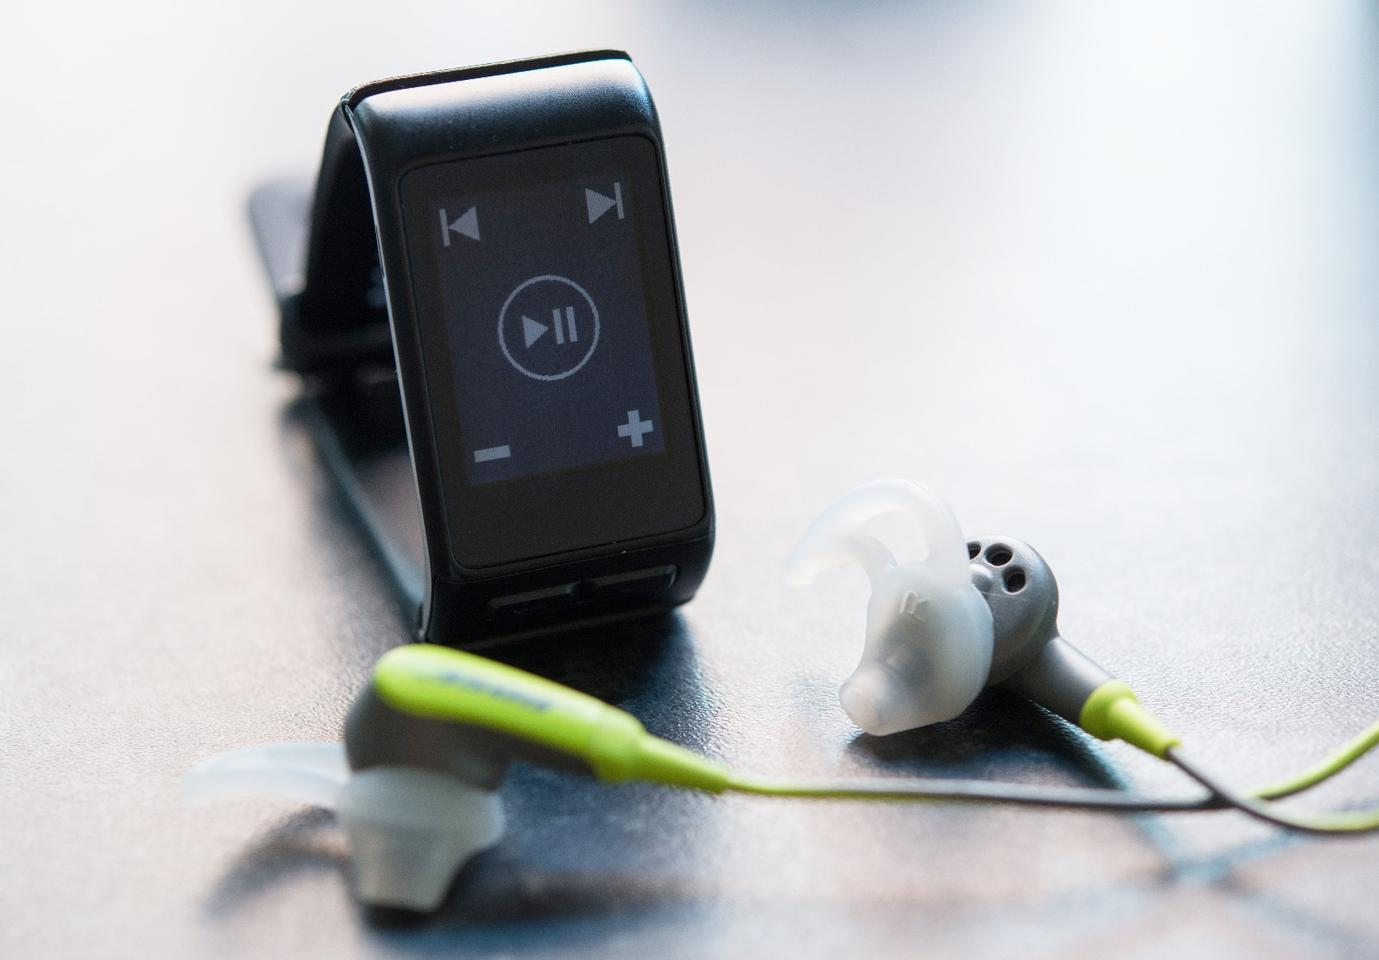 The Gamin Vivoactive HR can be used to control you smartphone music playback